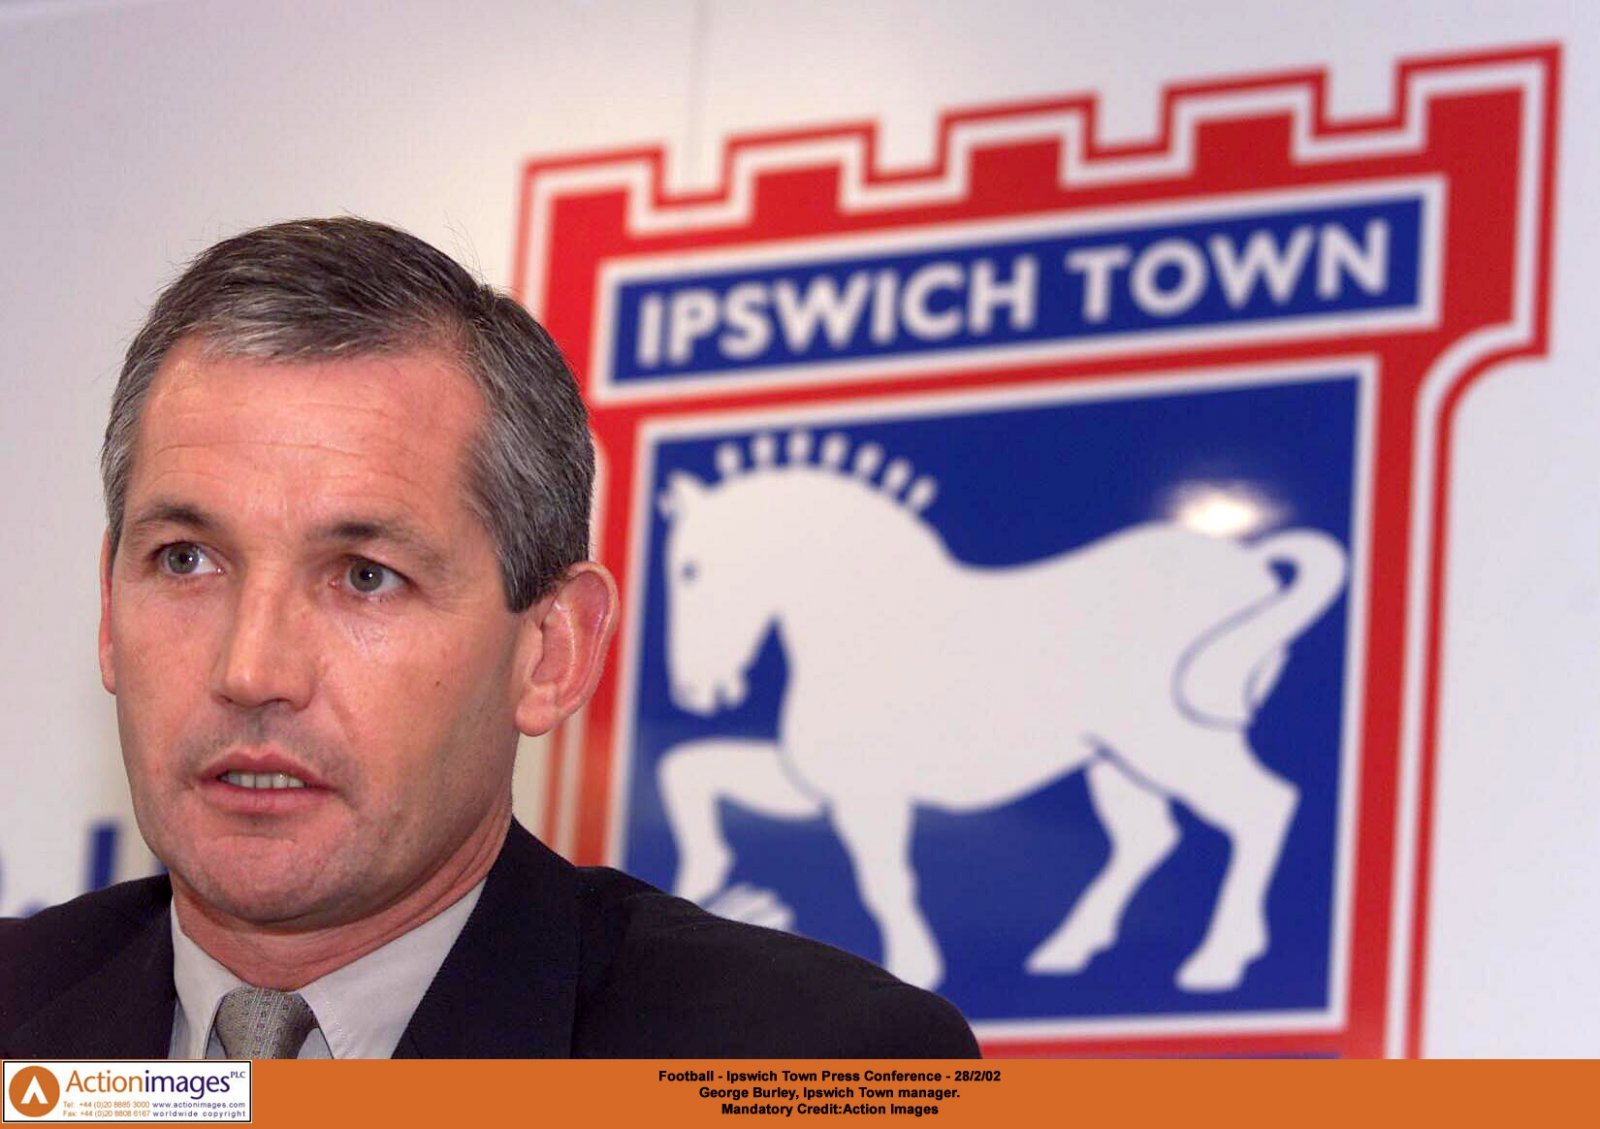 A moment in time: Wolves must avoid Ipswich's 2001/02 demise following Europa League qualification